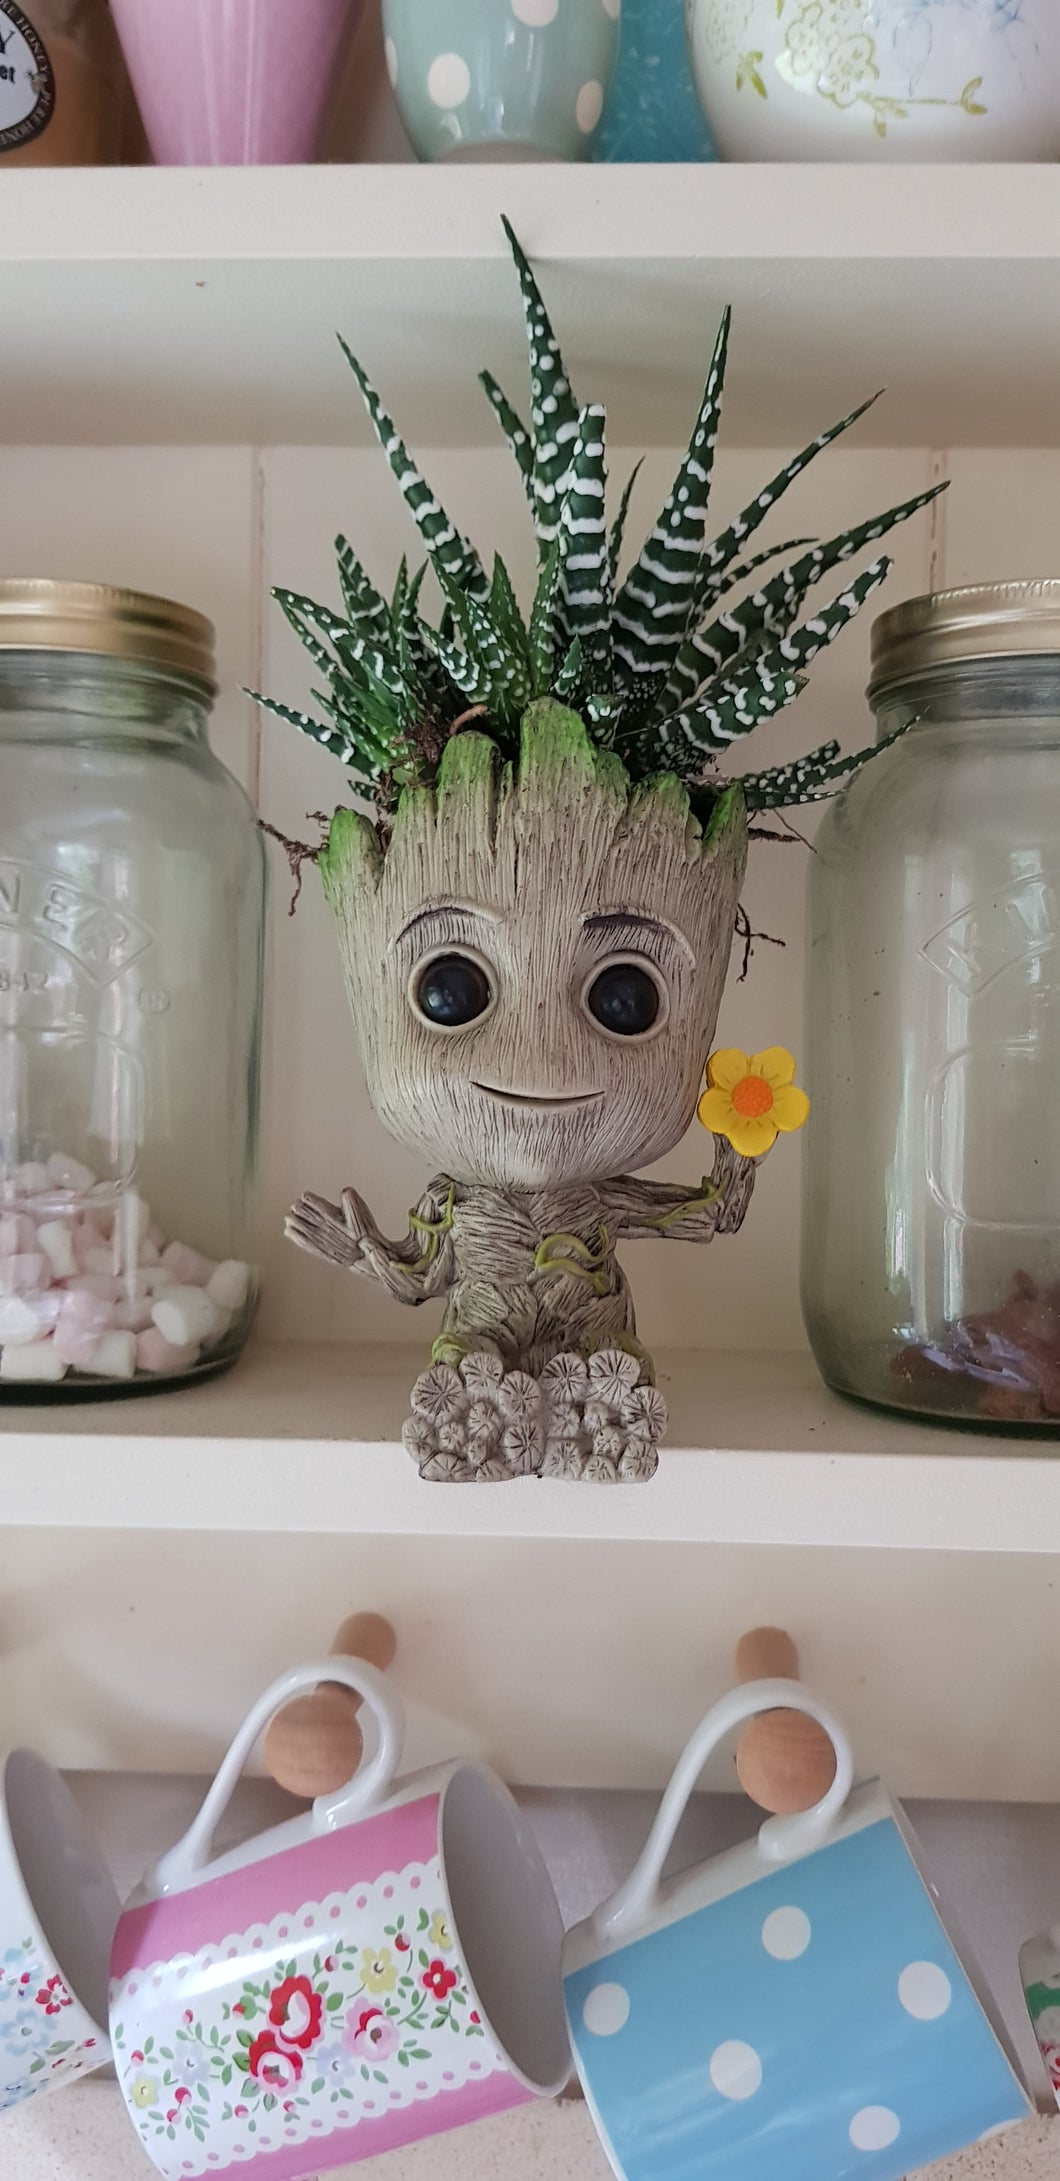 Baby Groot Plant Pot Holding Flower - with zebra Haworthia indoor plant      e